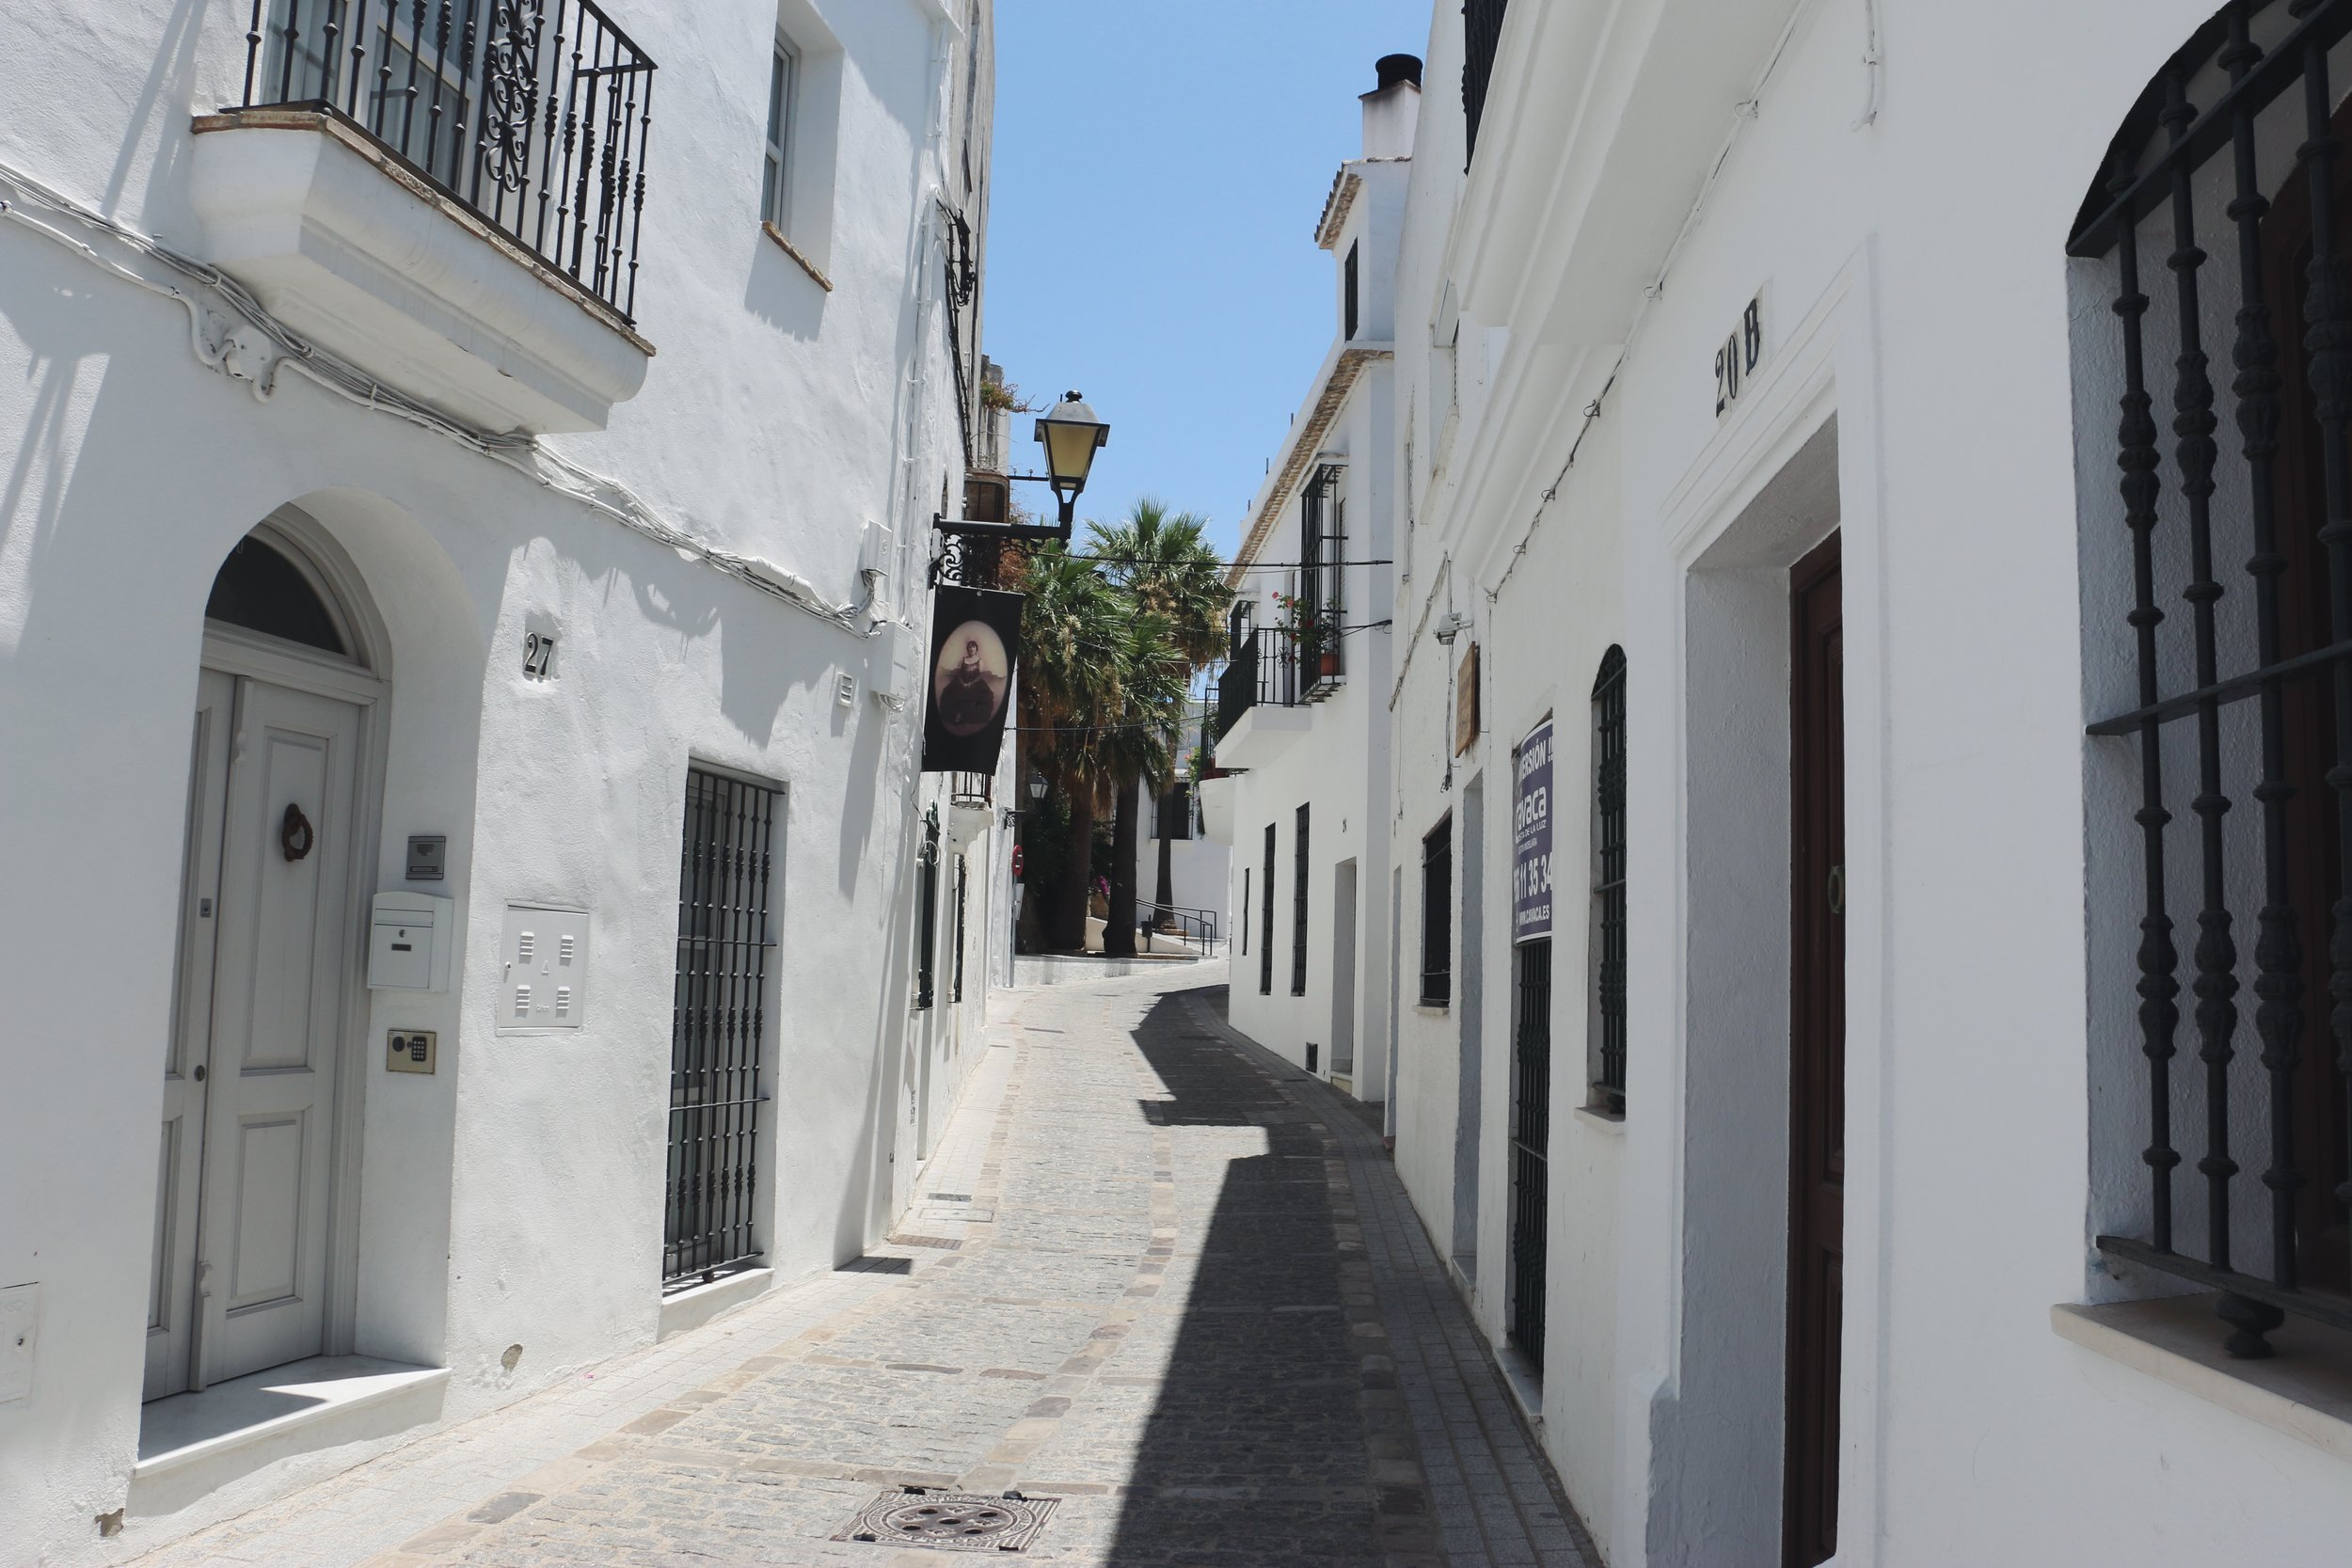 One of the many narrow streets of Vejer